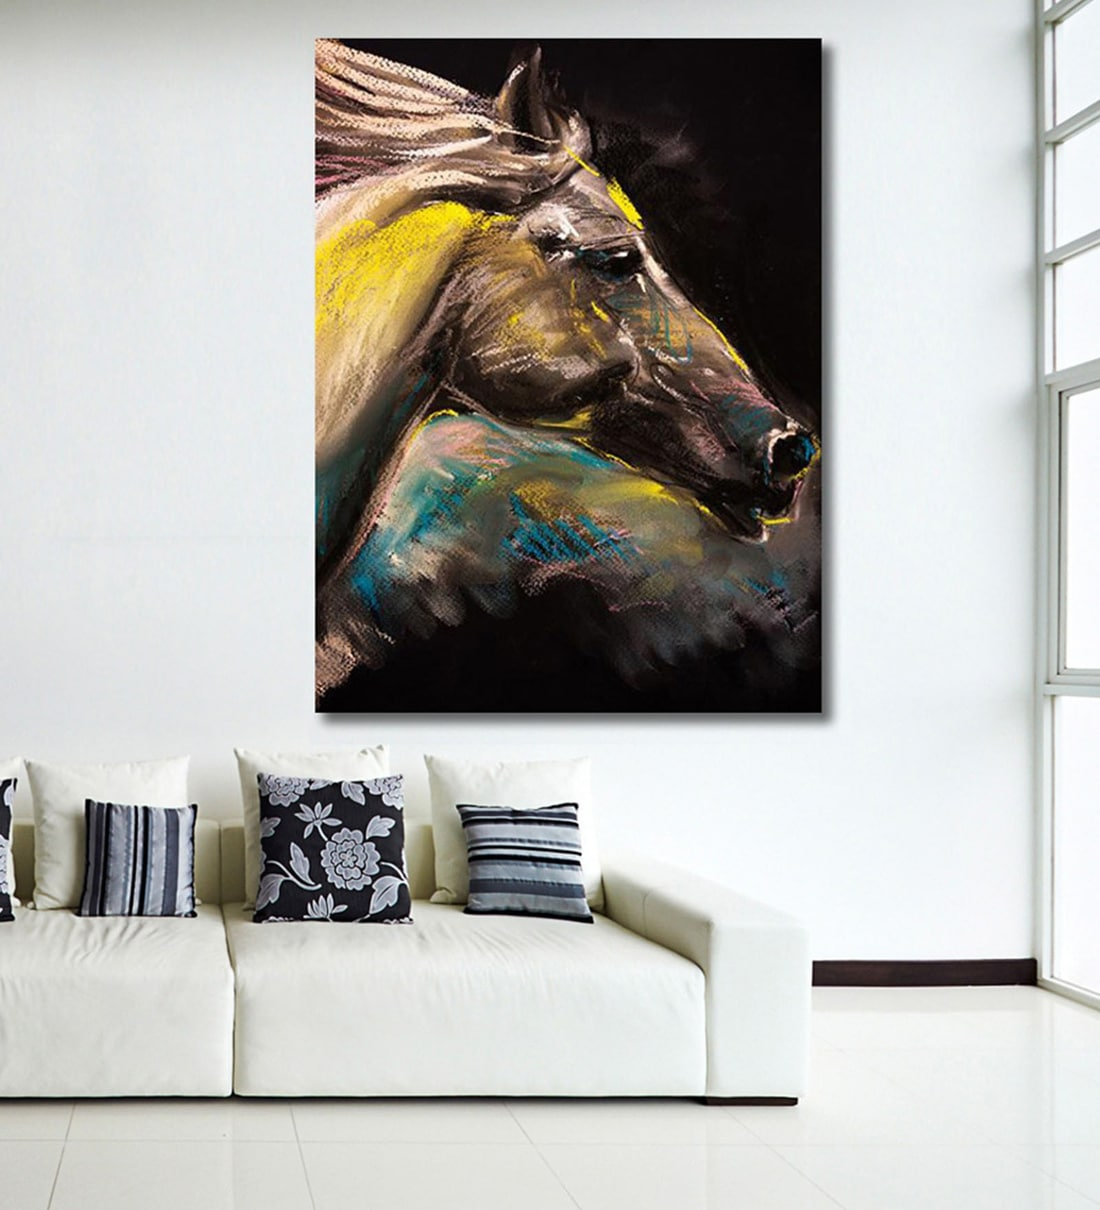 Buy Cotton Canvas 36 X 0 4 X 48 Inch White Horse Painting Unframed Digital Art Print By 999store Online Wildlife Art Prints Art Prints Home Decor Pepperfry Product